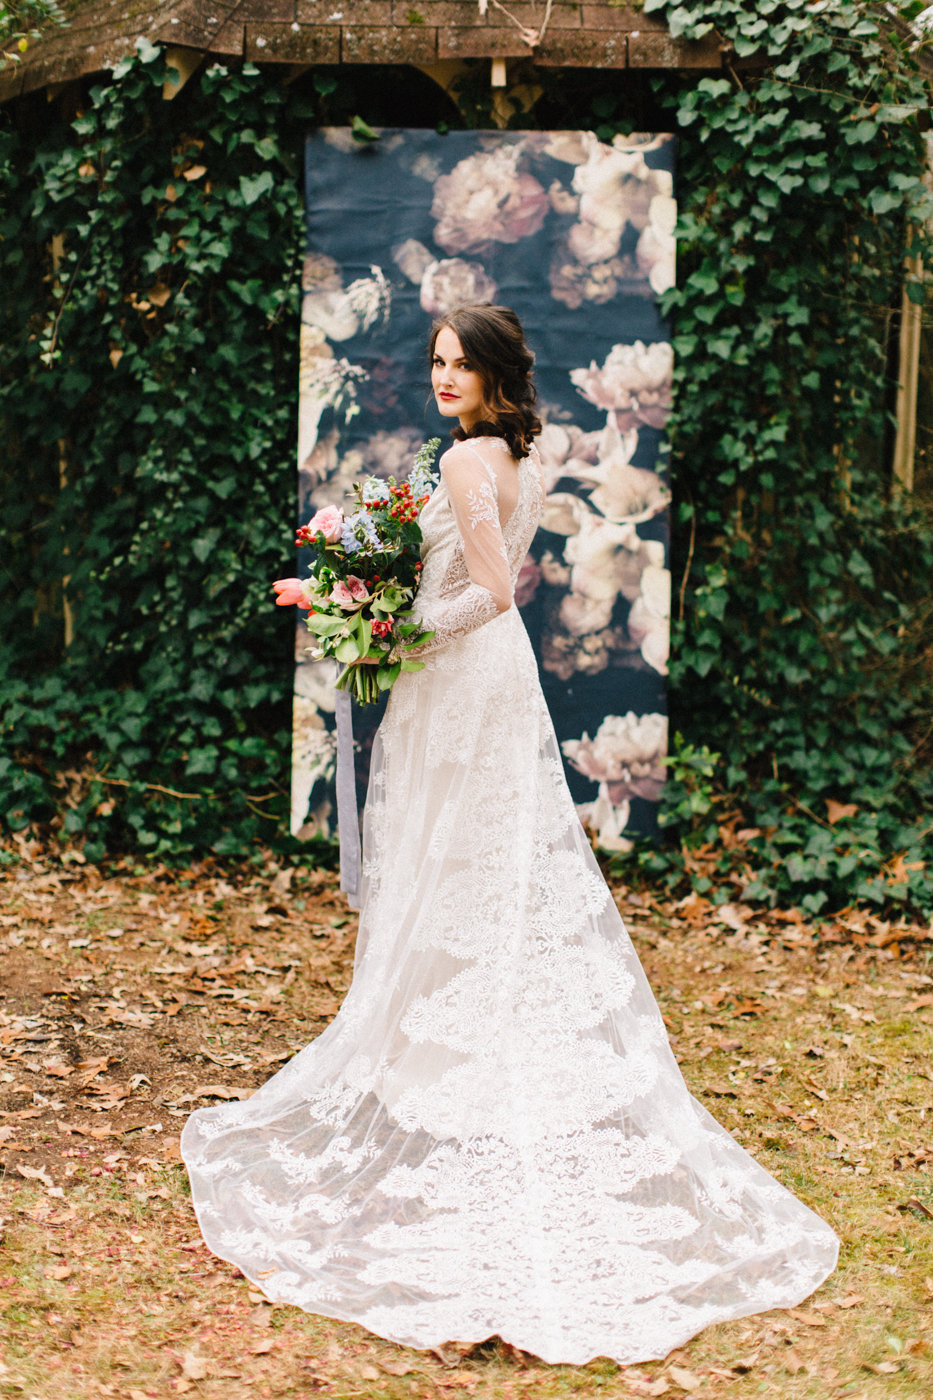 Backyard Elopement Inspiration for Valentine's Day - photo by 4 Corners Photography http://ruffledblog.com/backyard-elopement-inspiration-for-valentines-day